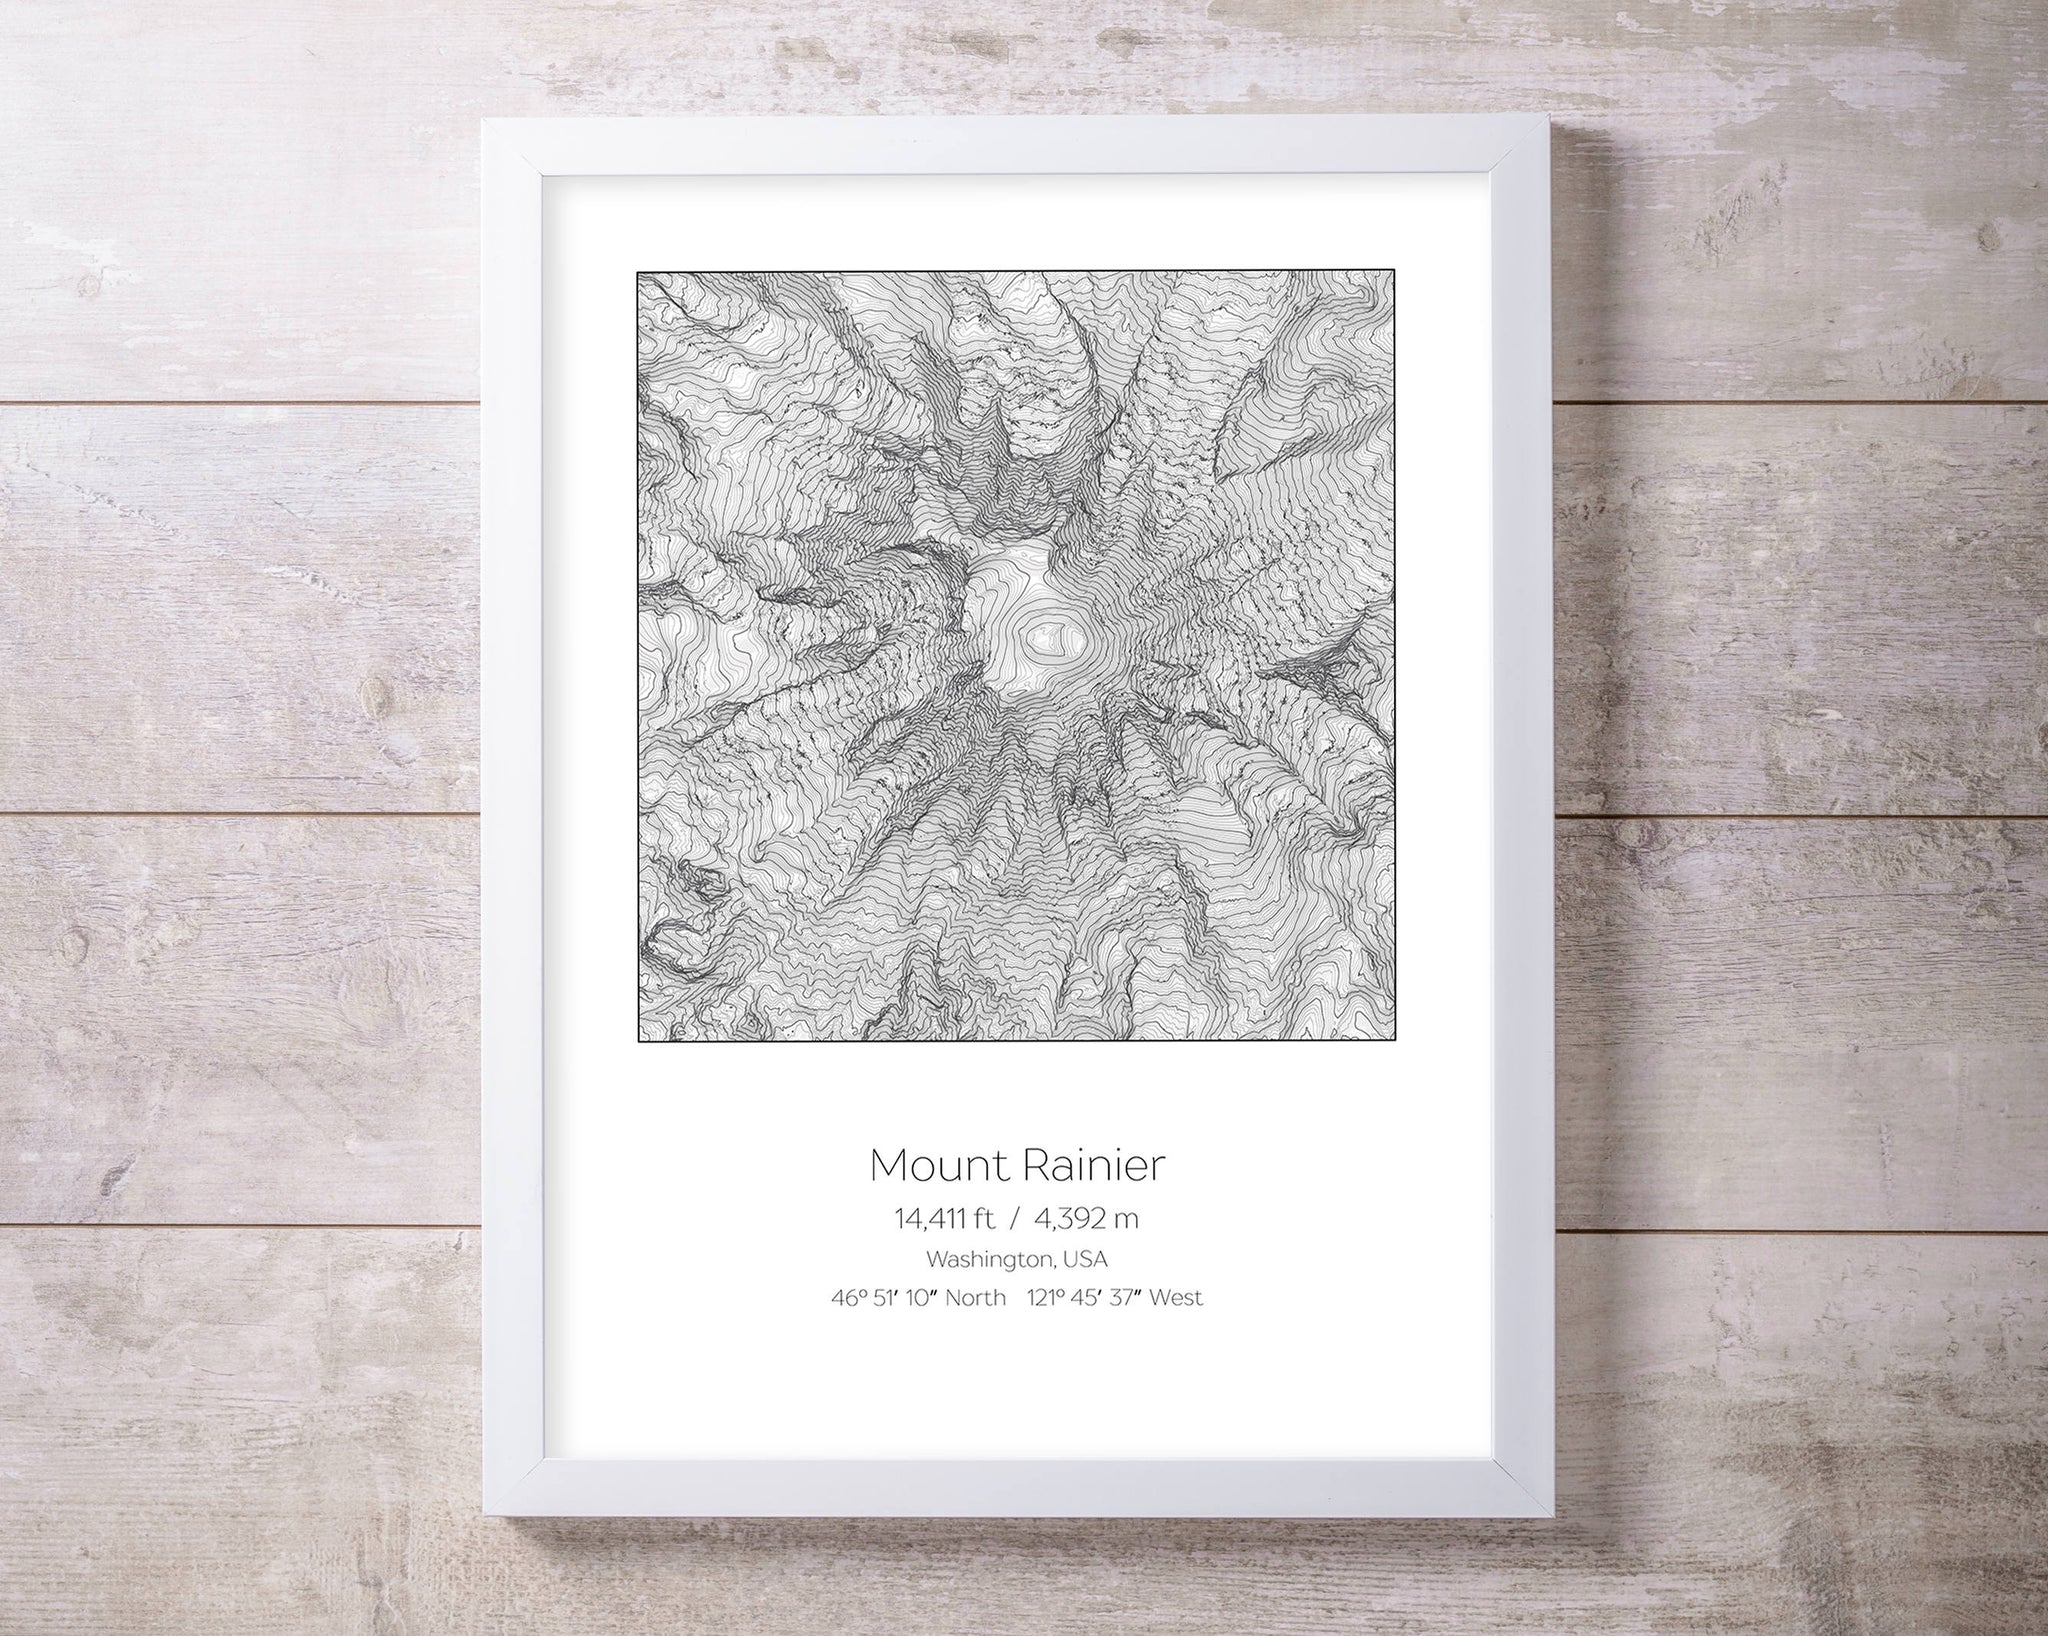 Mt Rainier, Washington, Elevation Topography Print Wall Art